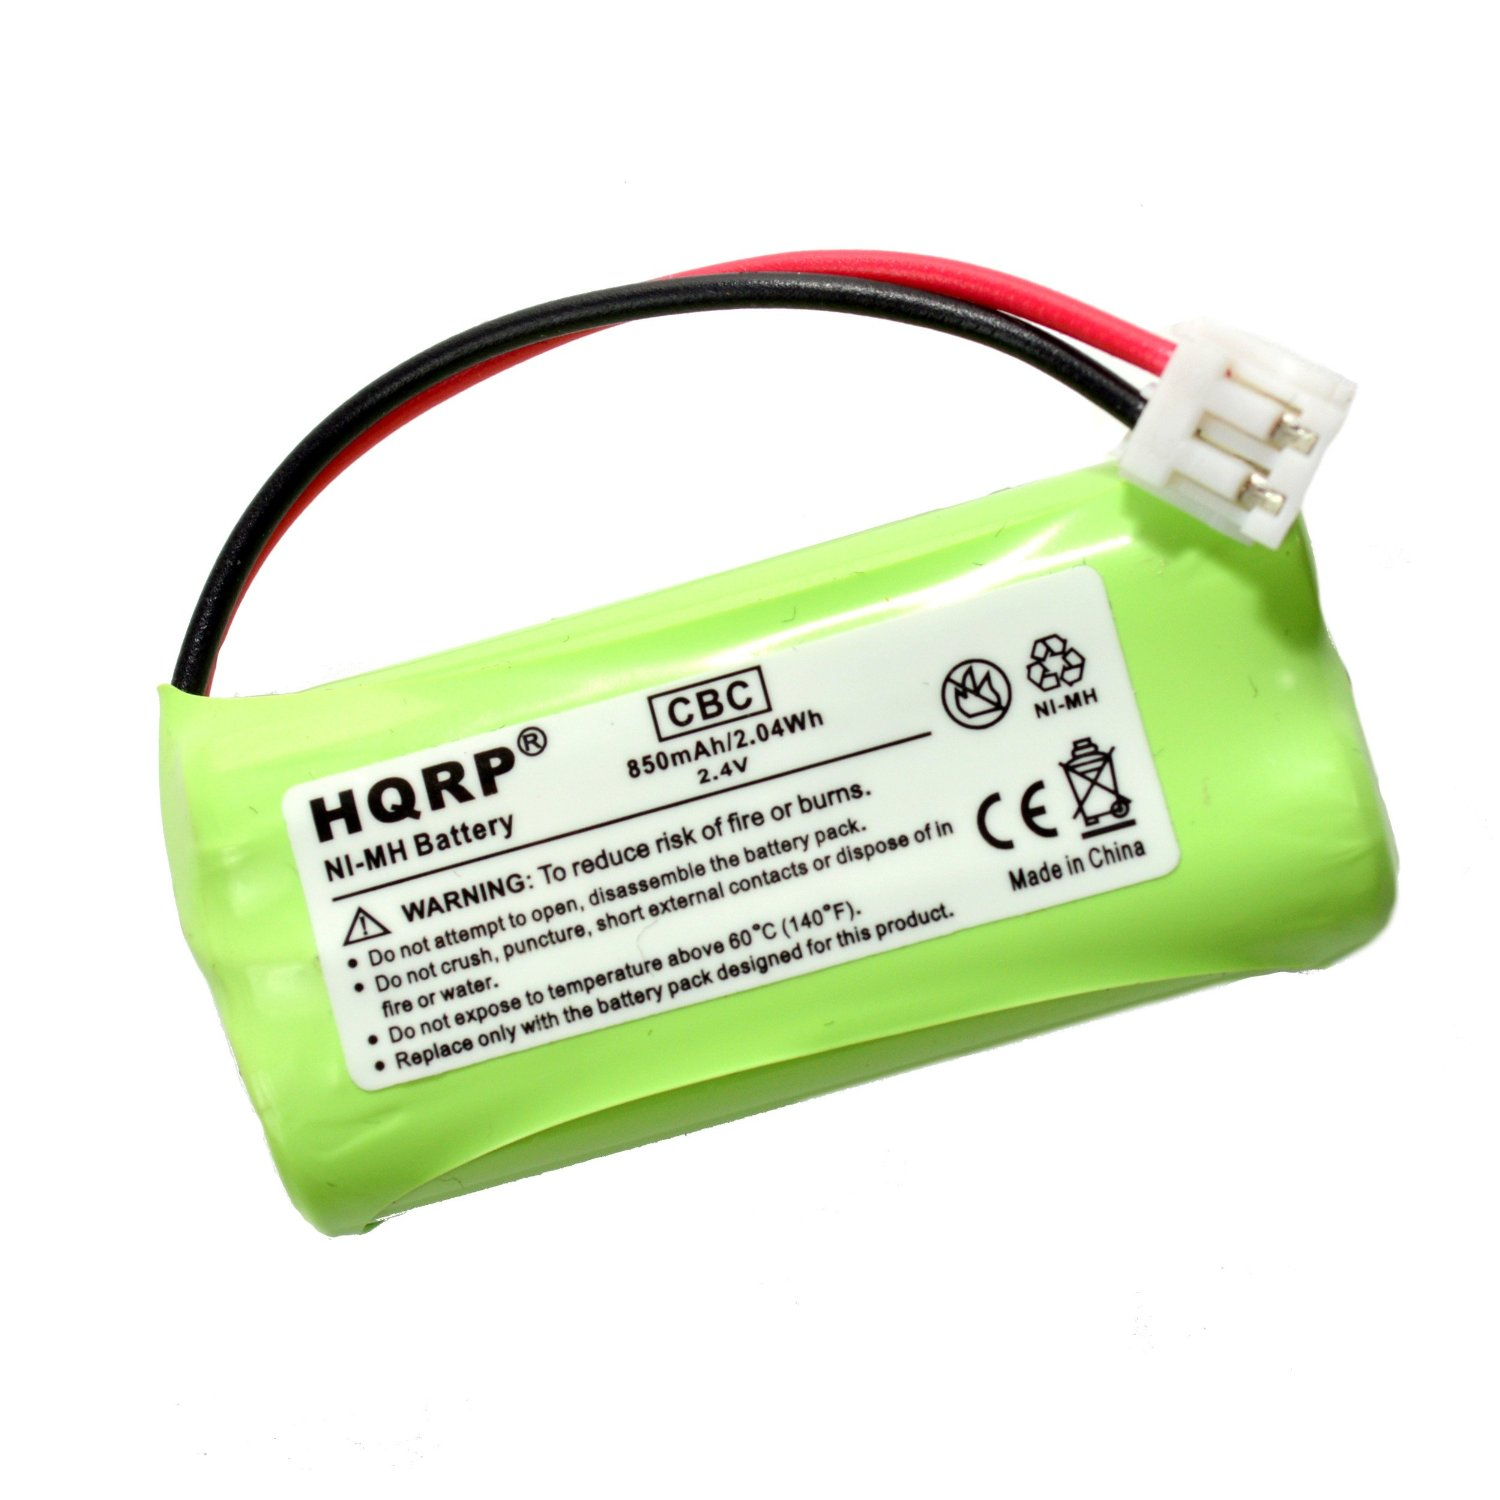 HQRP Cordless Telephone Battery for AT&T / Lucent BT18433, BT28433, General Electric GE 5-2734, Gold Peak GP70AAAH2BMJZR Replacement